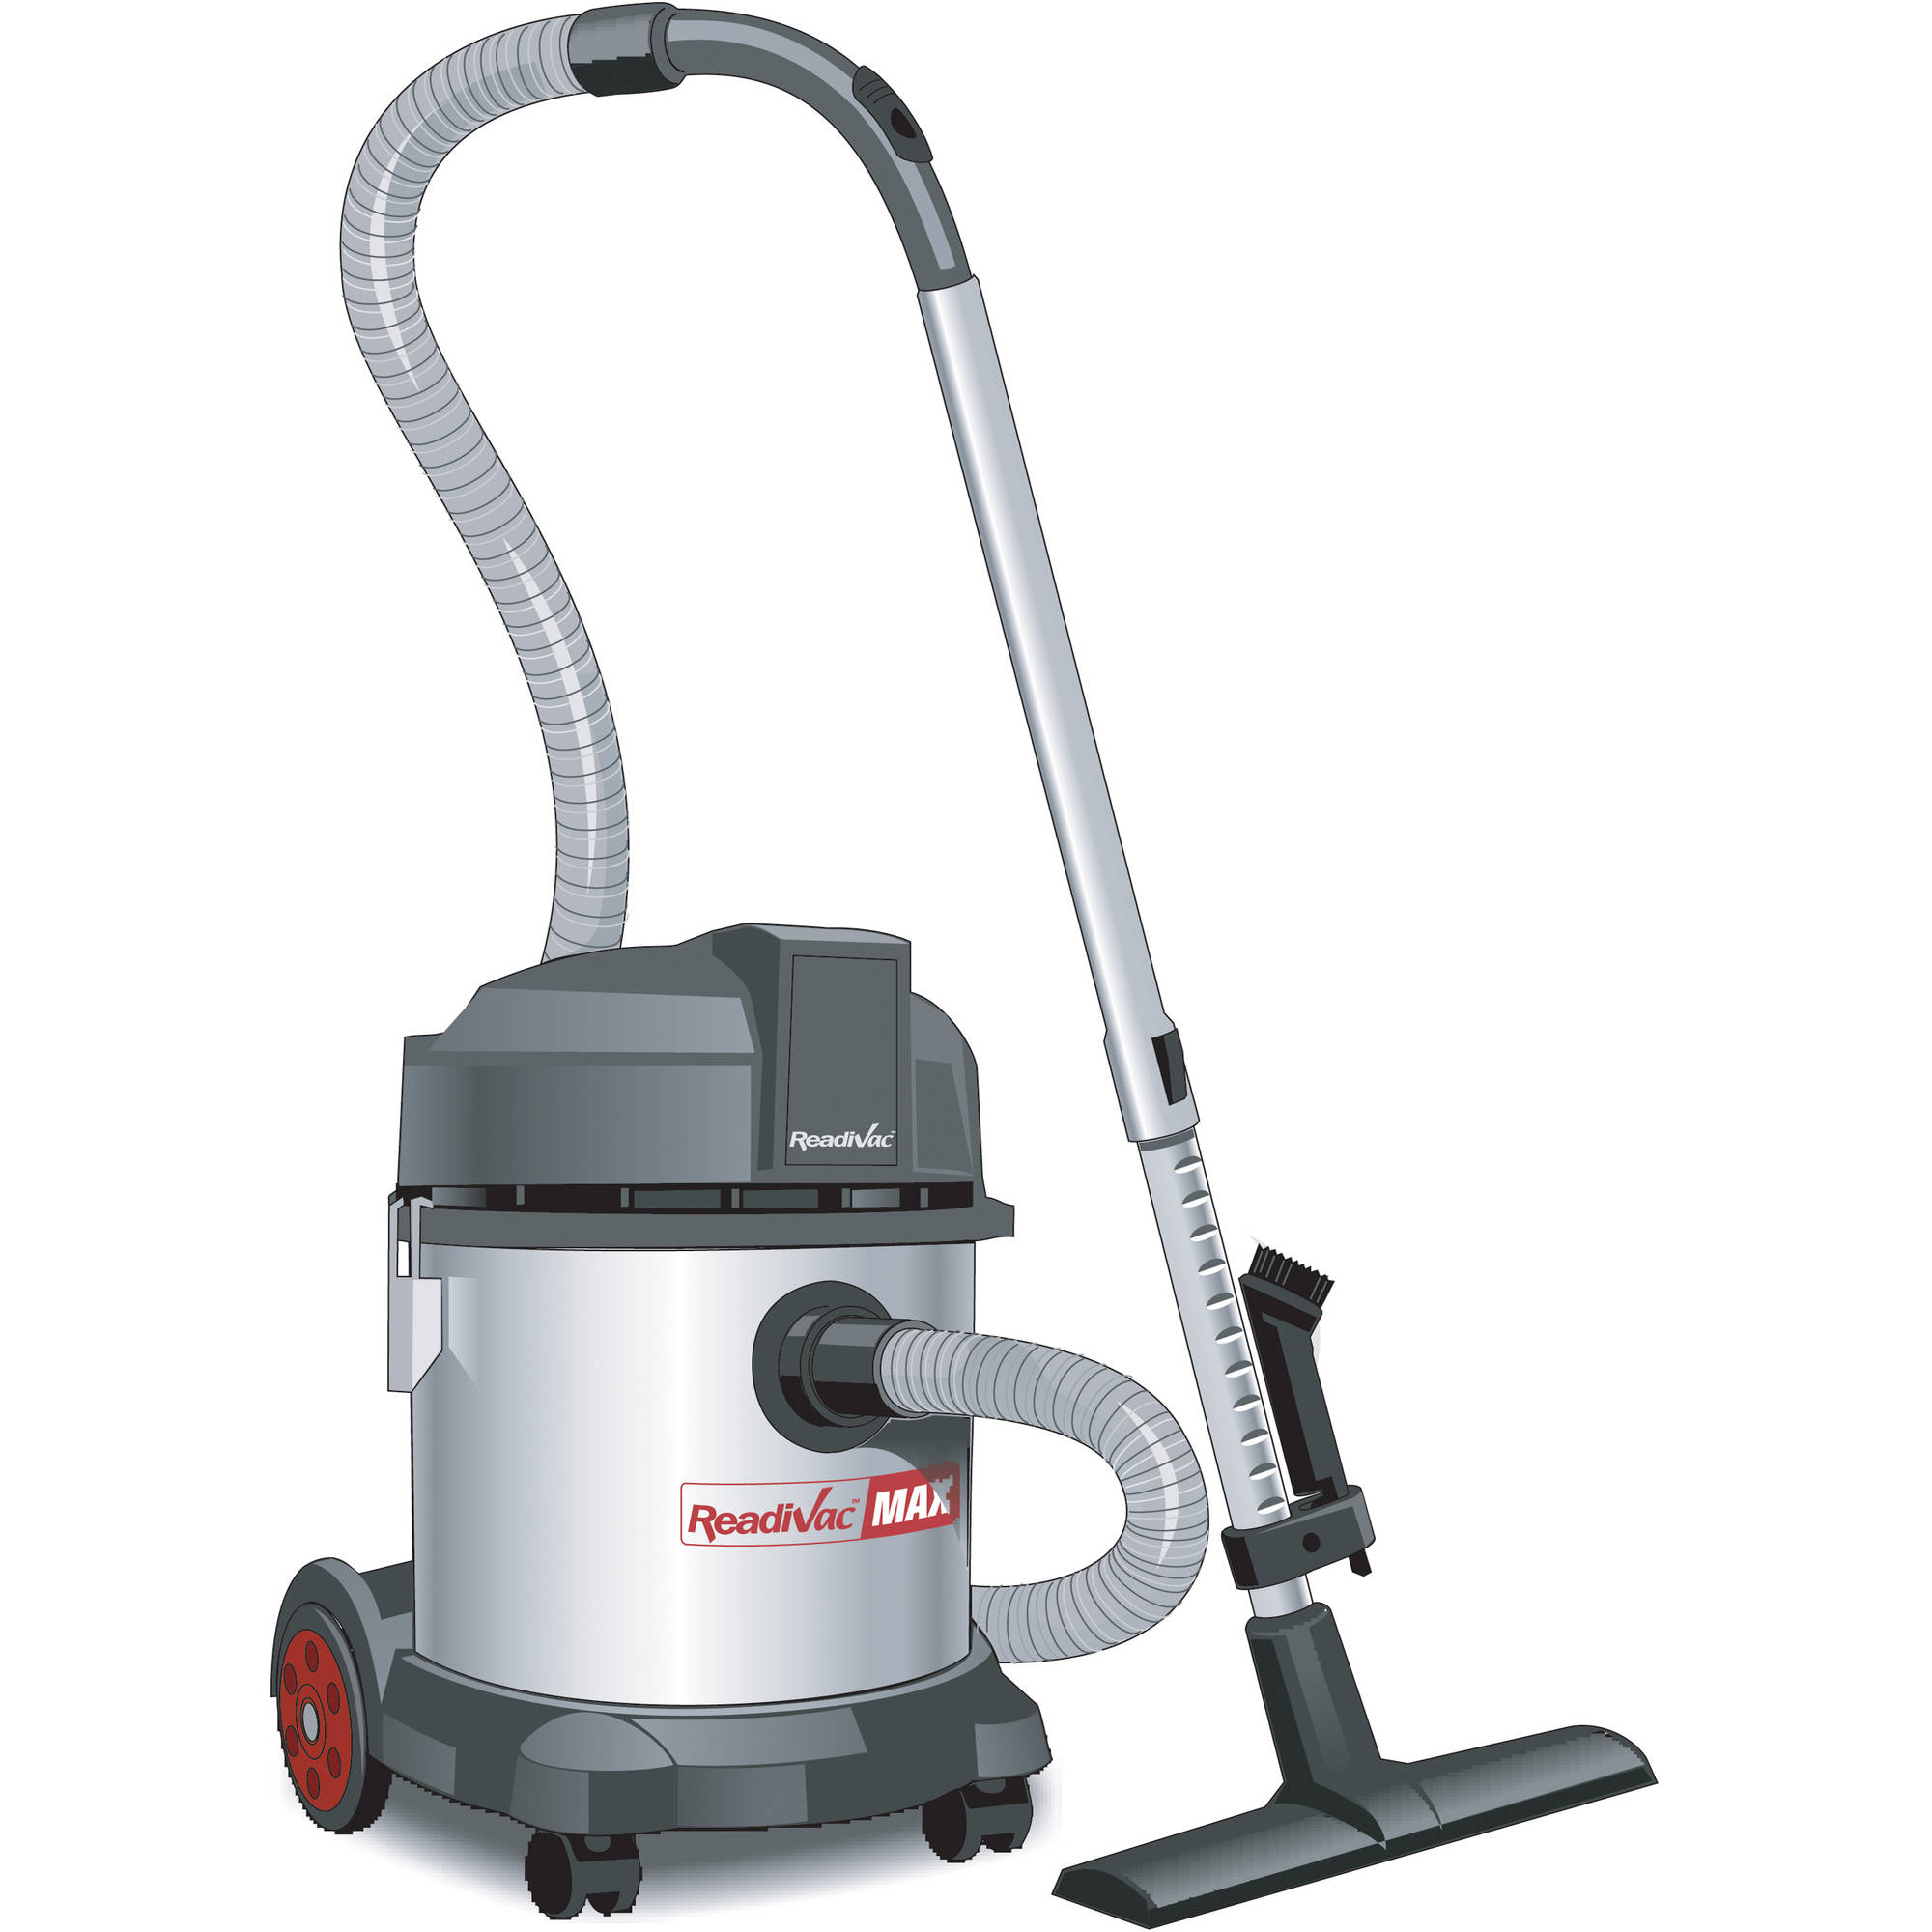 ReadiVac Max 5 Gallon Wet/Dry Canister Vacuum